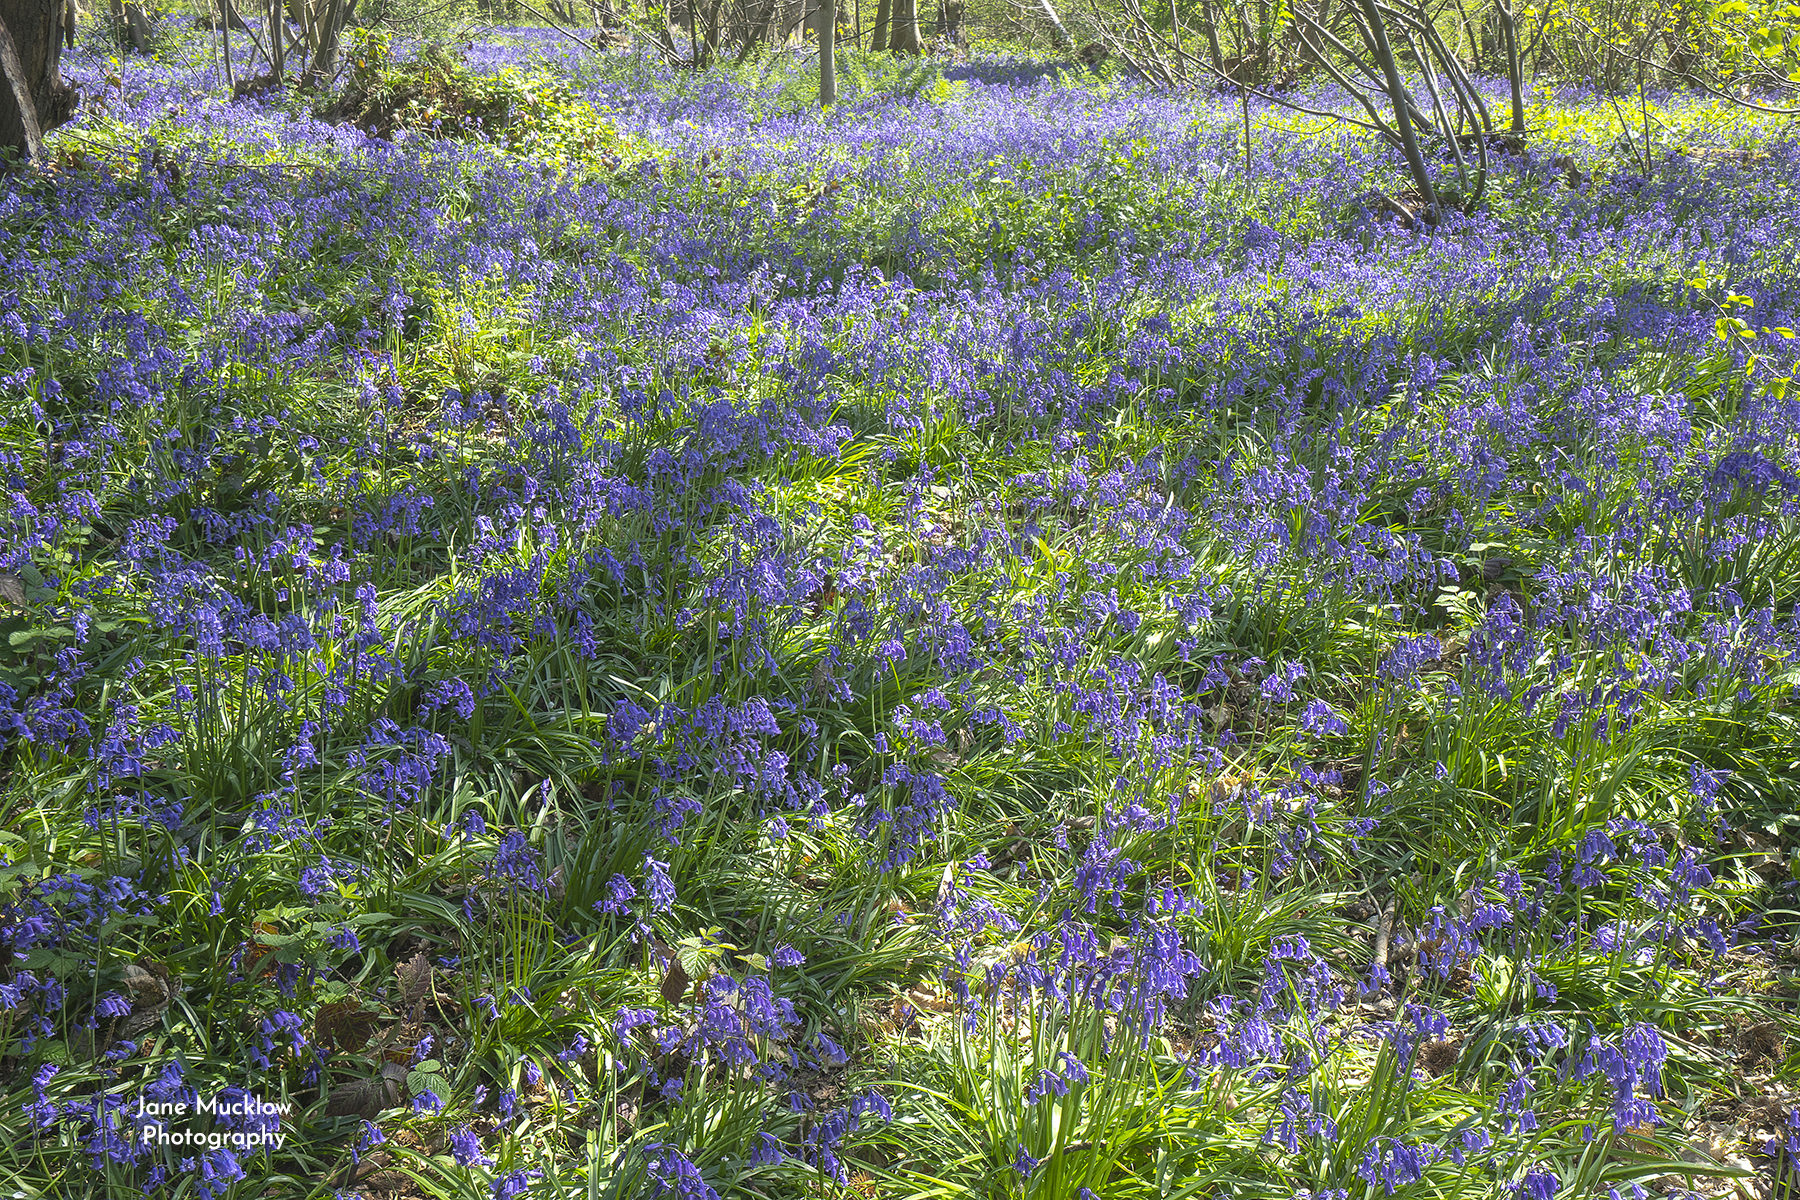 Photo of bluebells in Greenhill Wood Otford Kent by Jane Mucklow